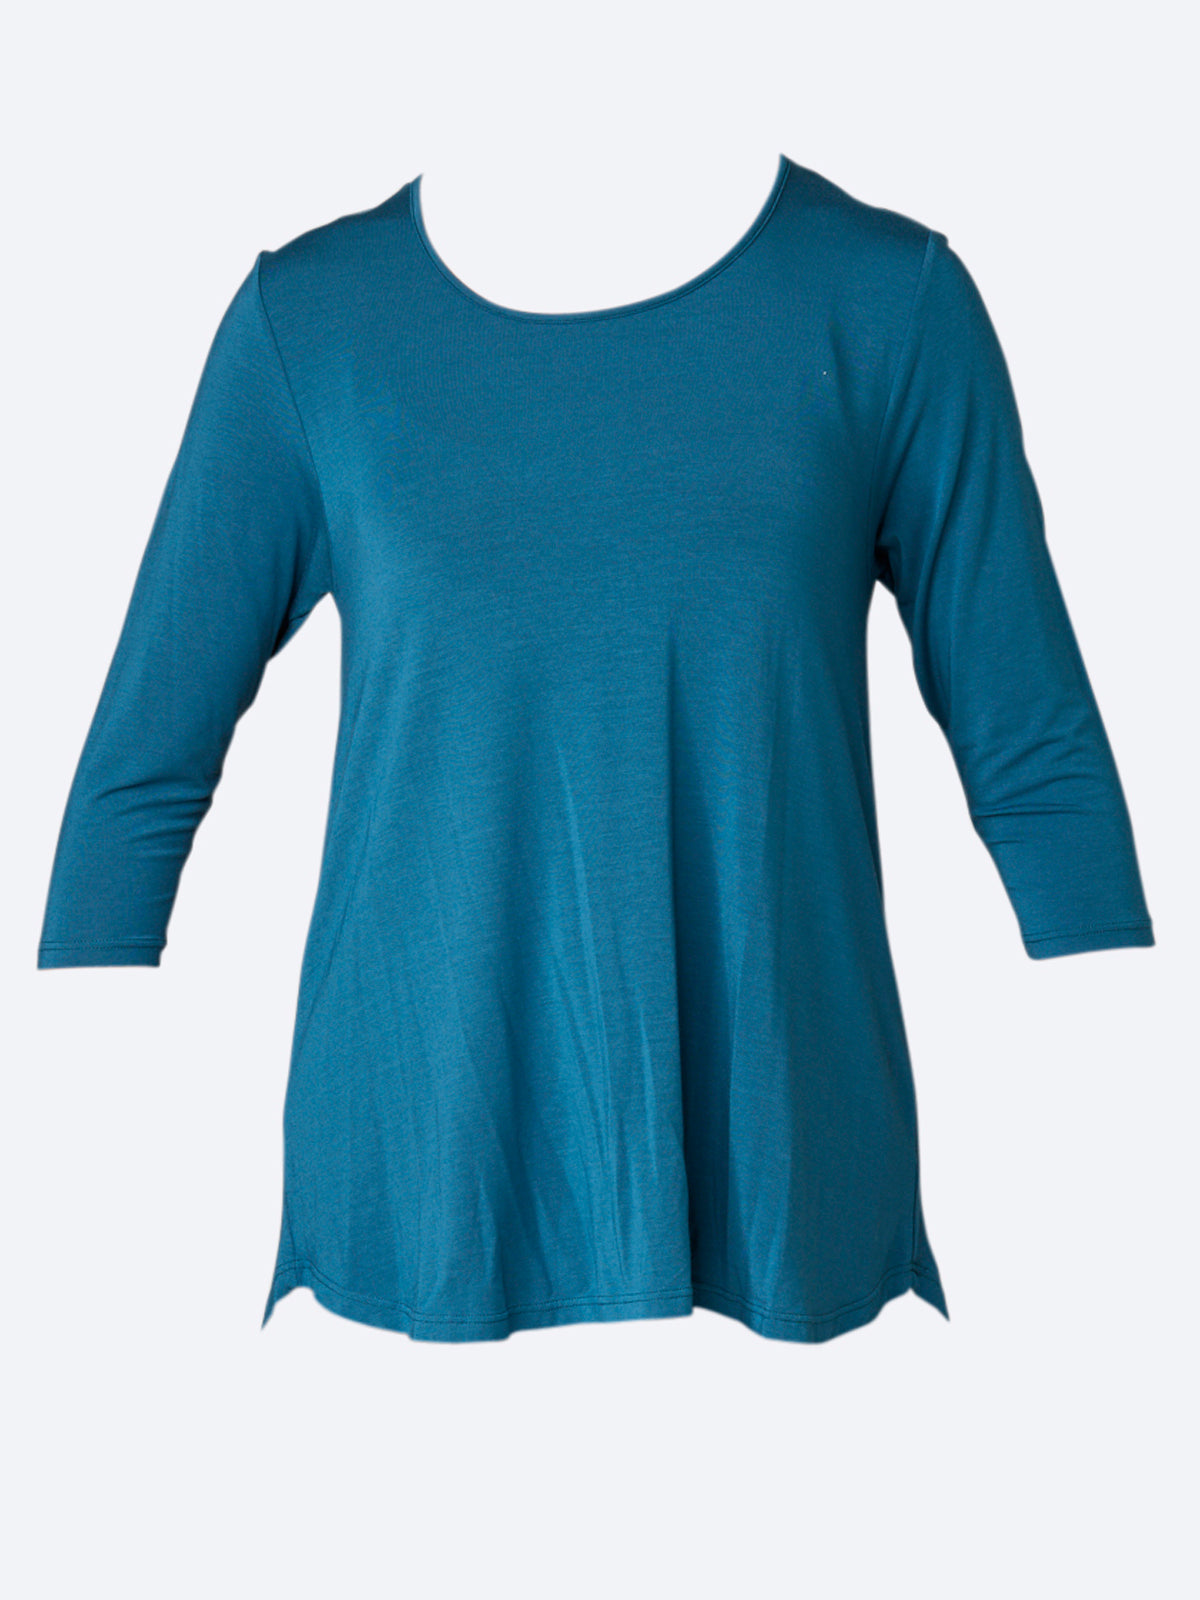 TANI 3/4 SLV RELAX TOP